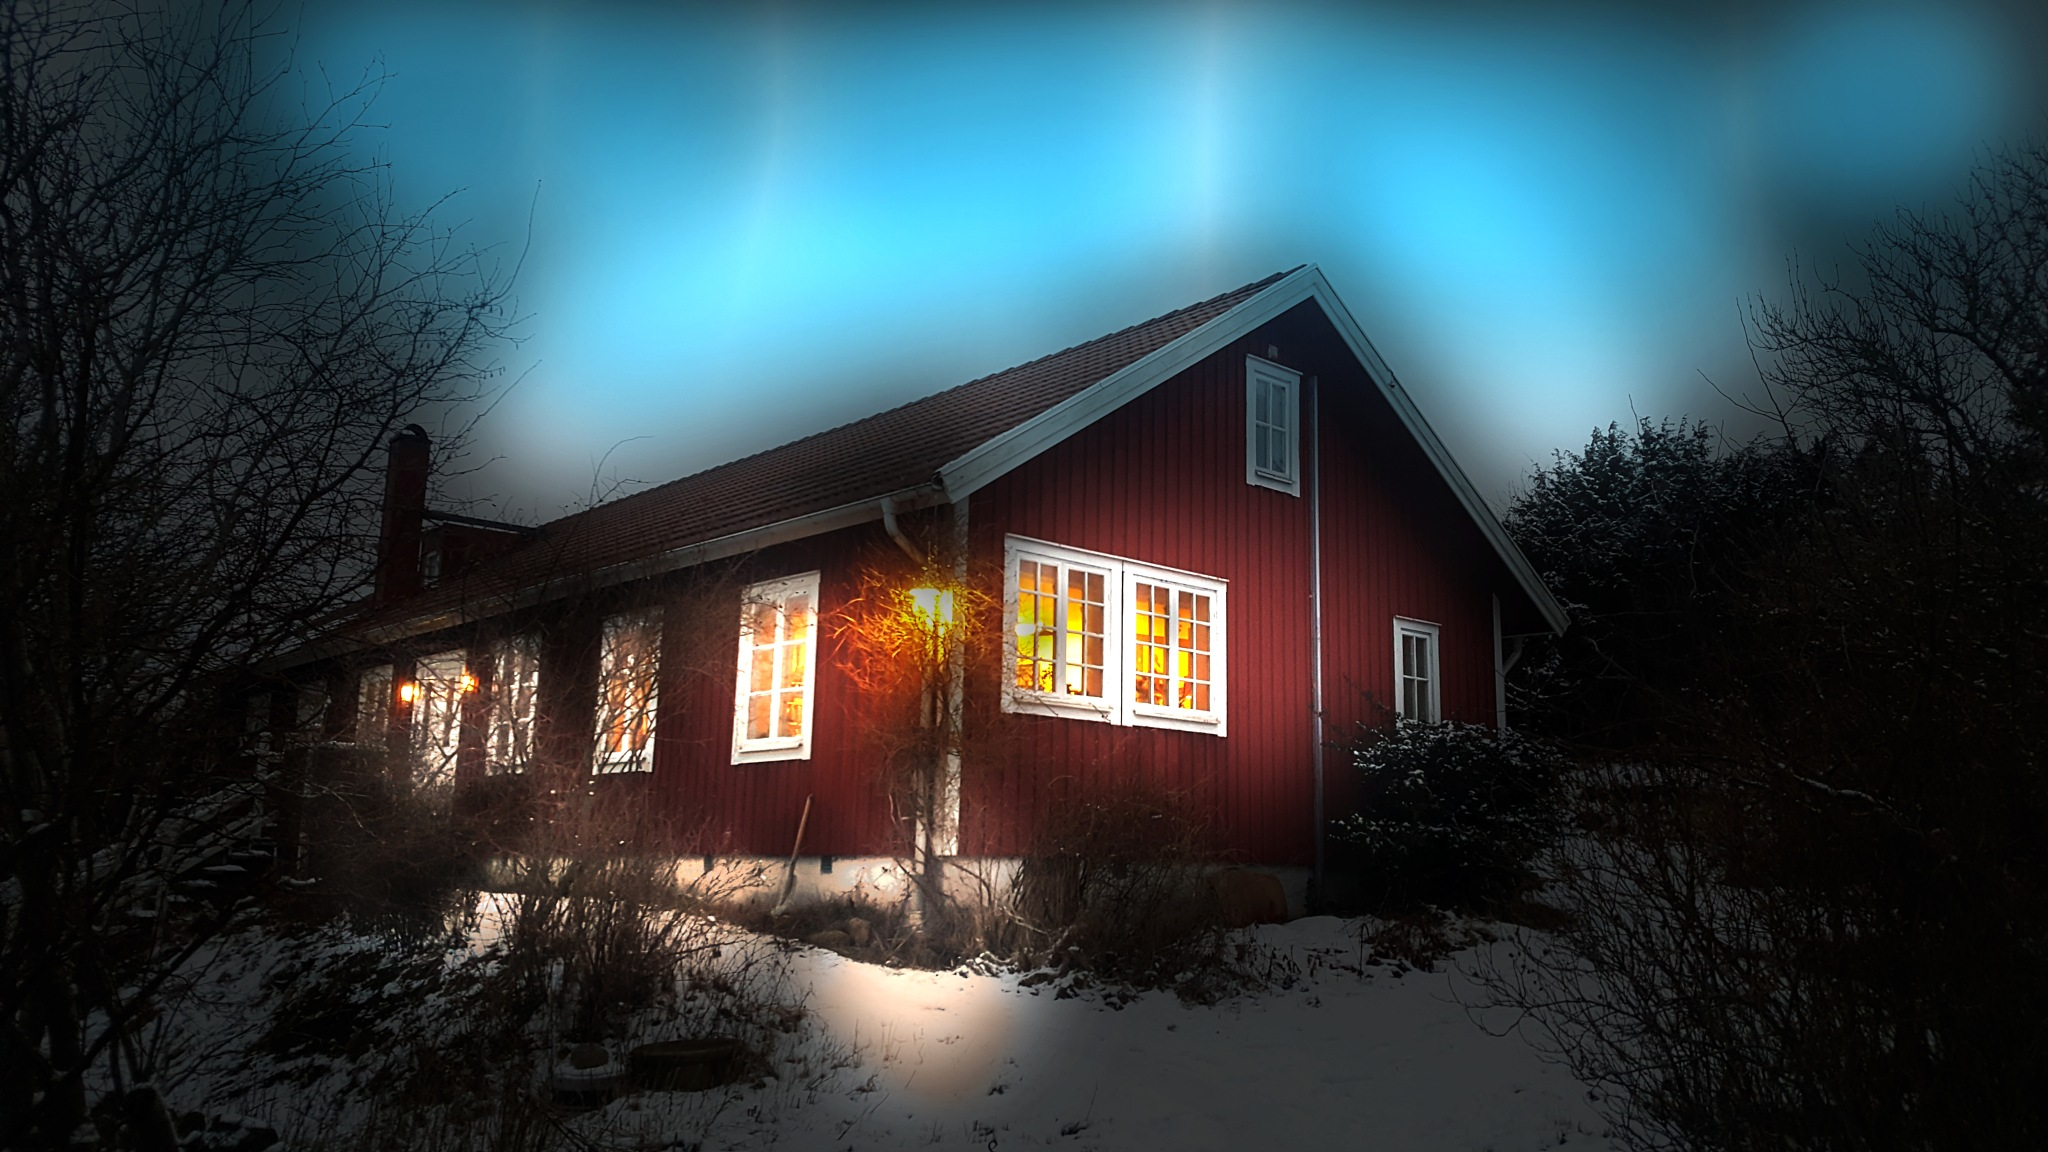 A house in the evening by David Sjöstrand